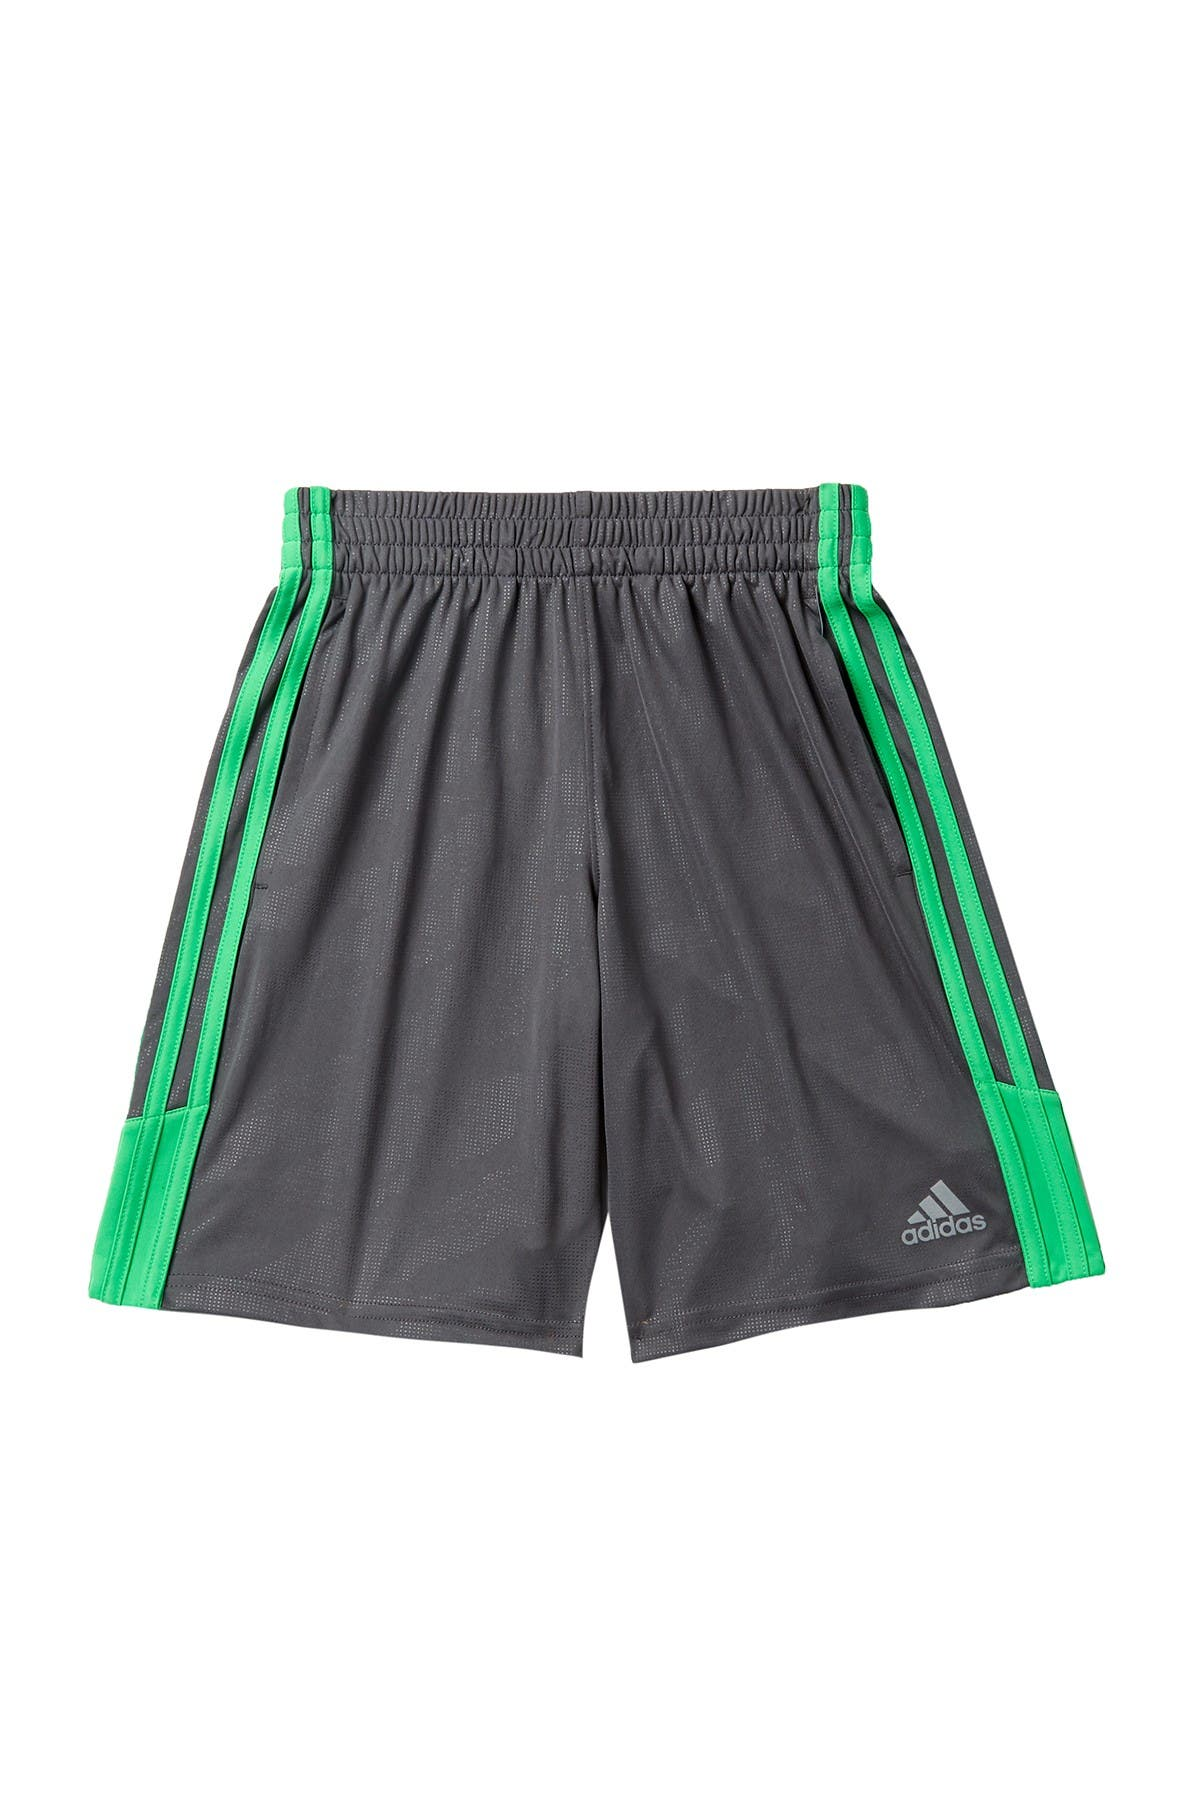 Image of adidas Moto Camo Shorts